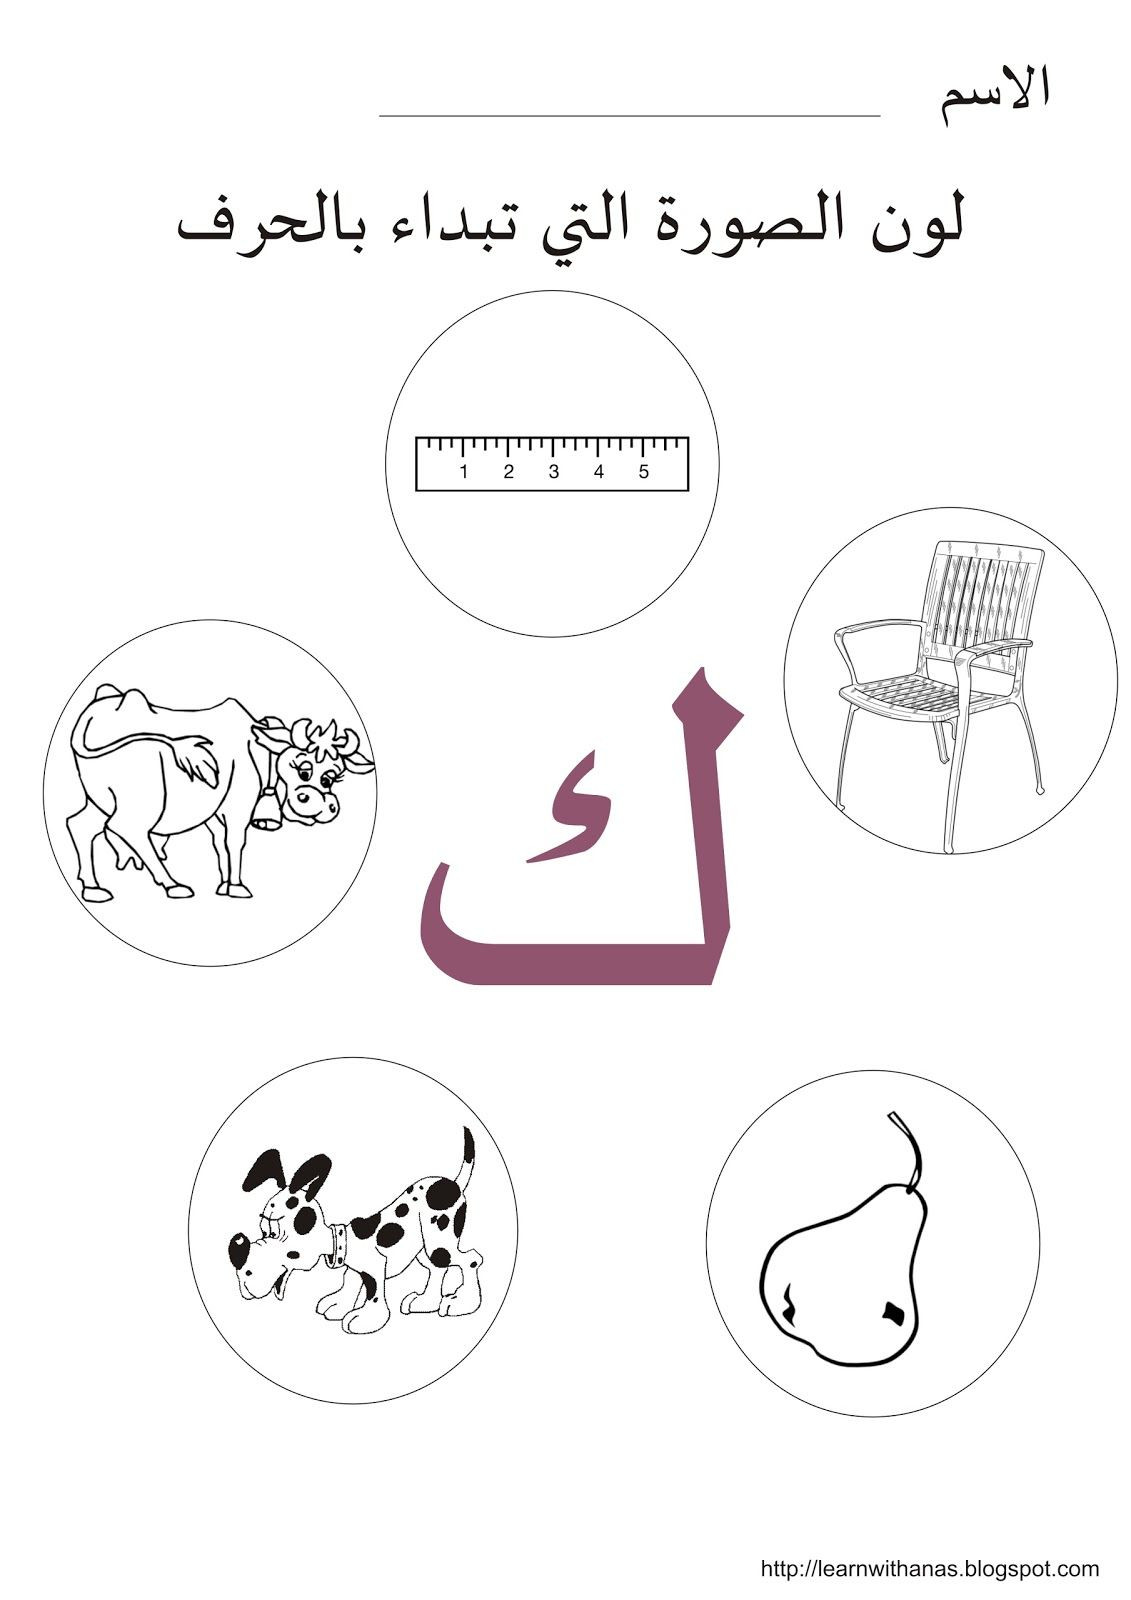 Ck Worksheets for 2nd Grade تعلم مع أنس